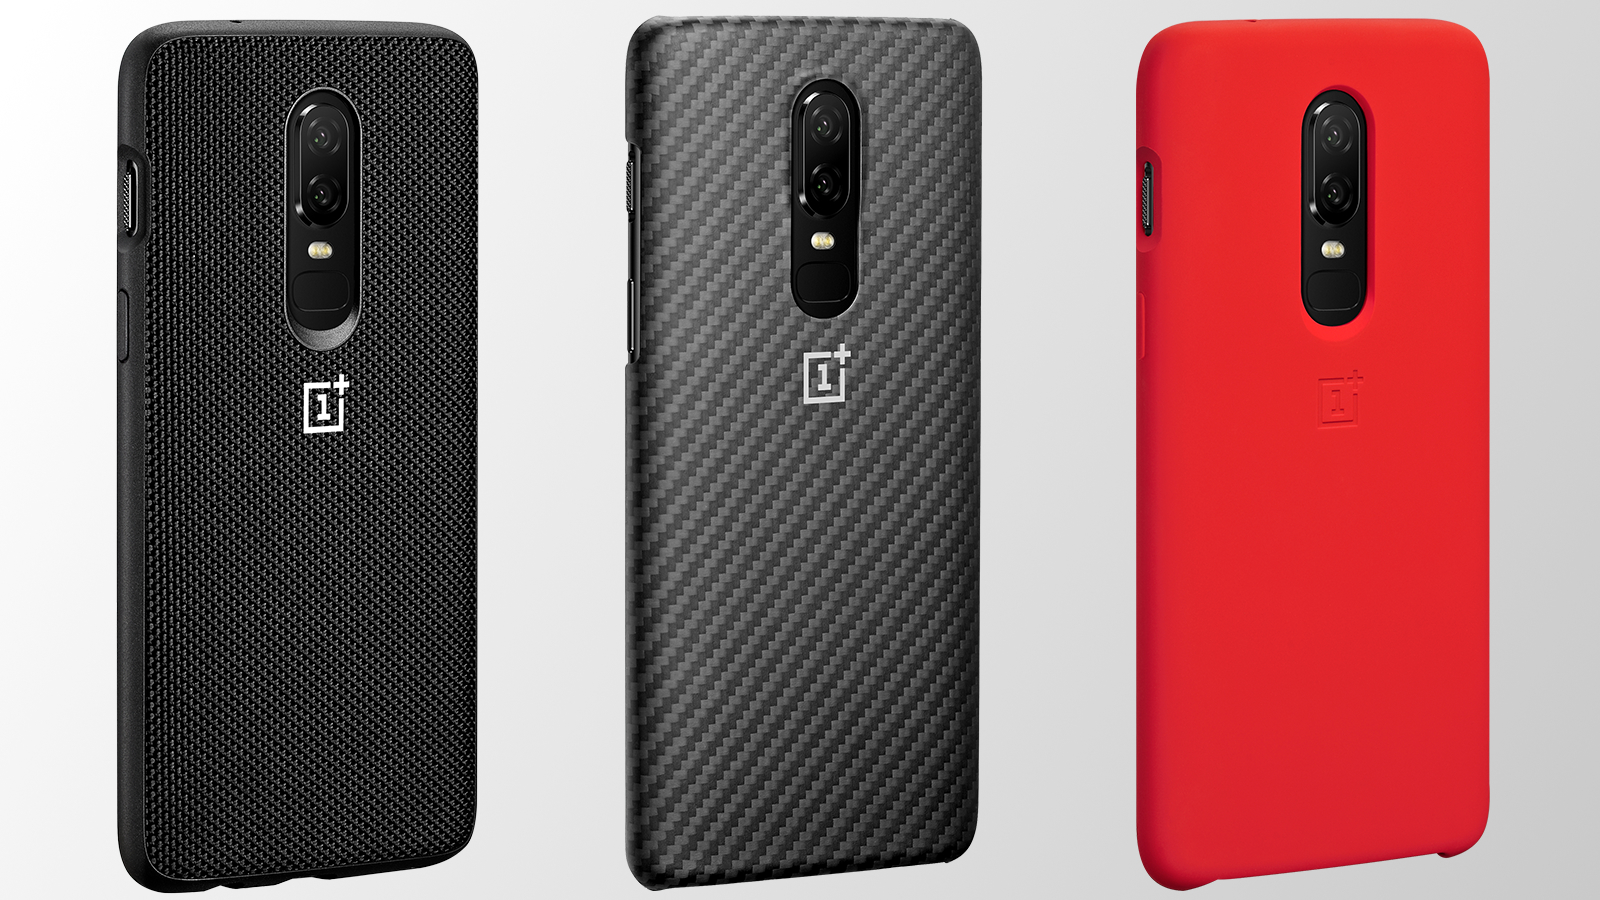 super popular 709f5 75d95 Best OnePlus 6 cases to protect your new phone | TechRadar